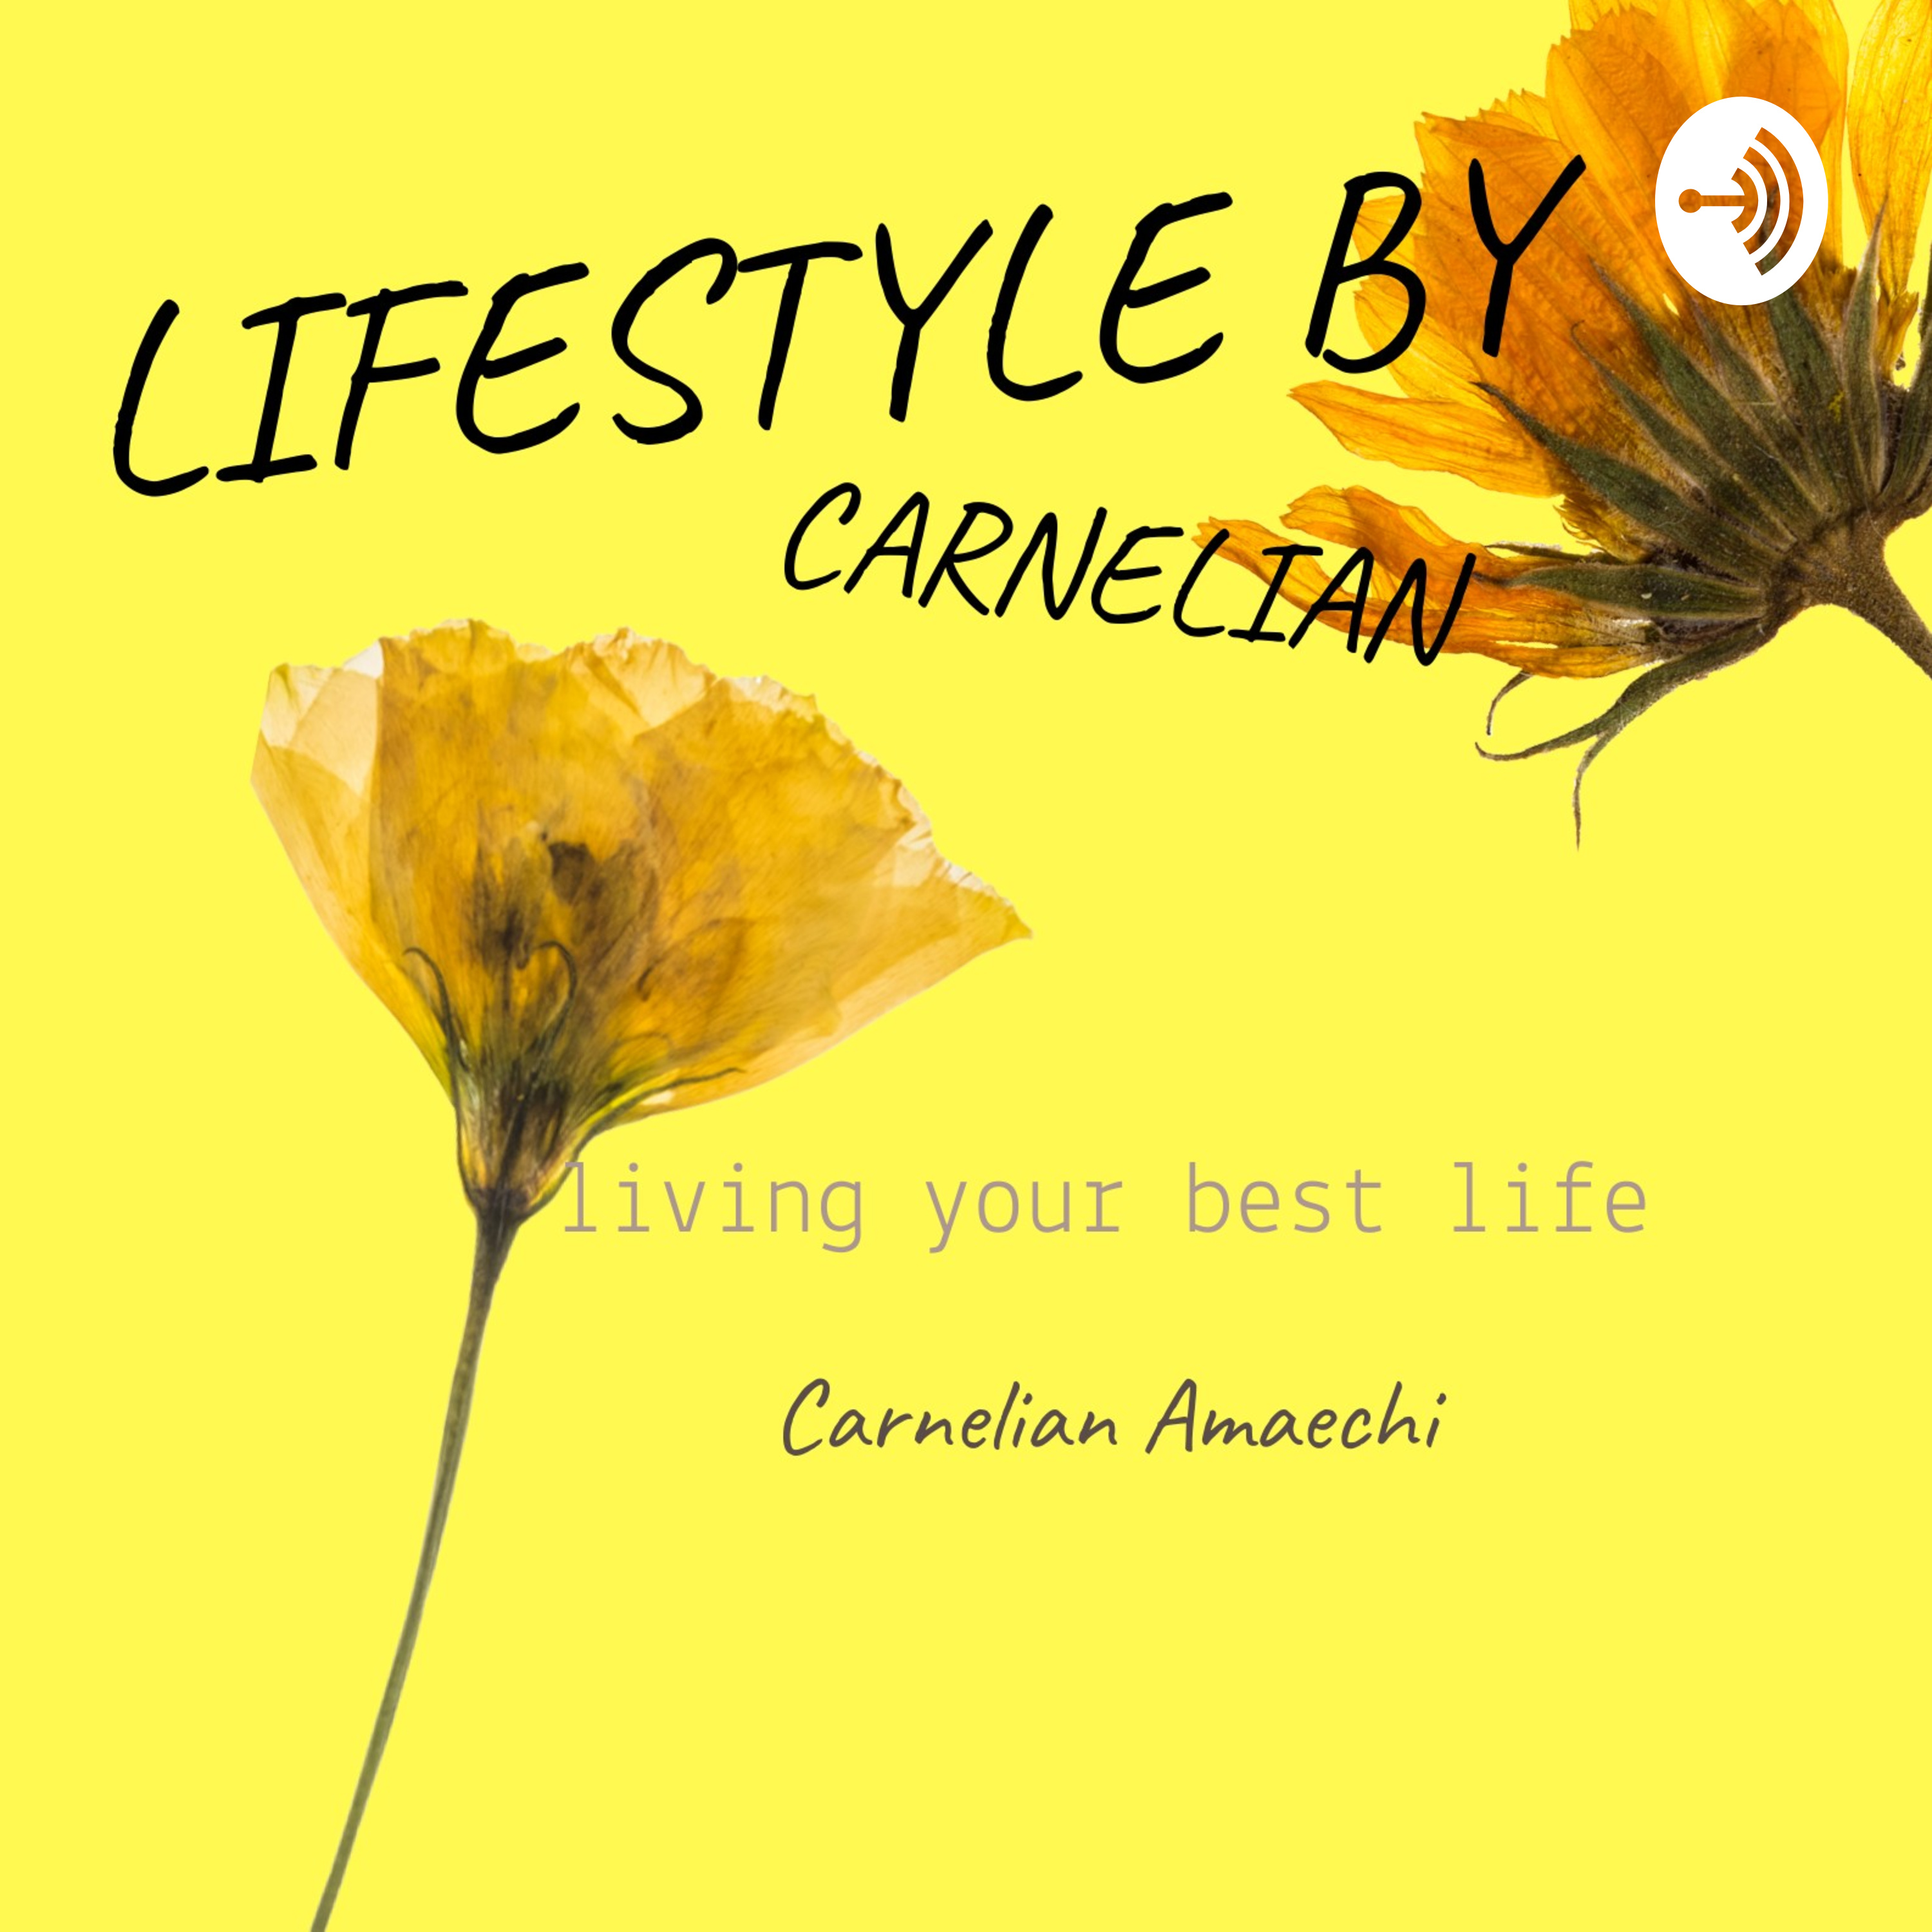 Lifestyle By Carnelian